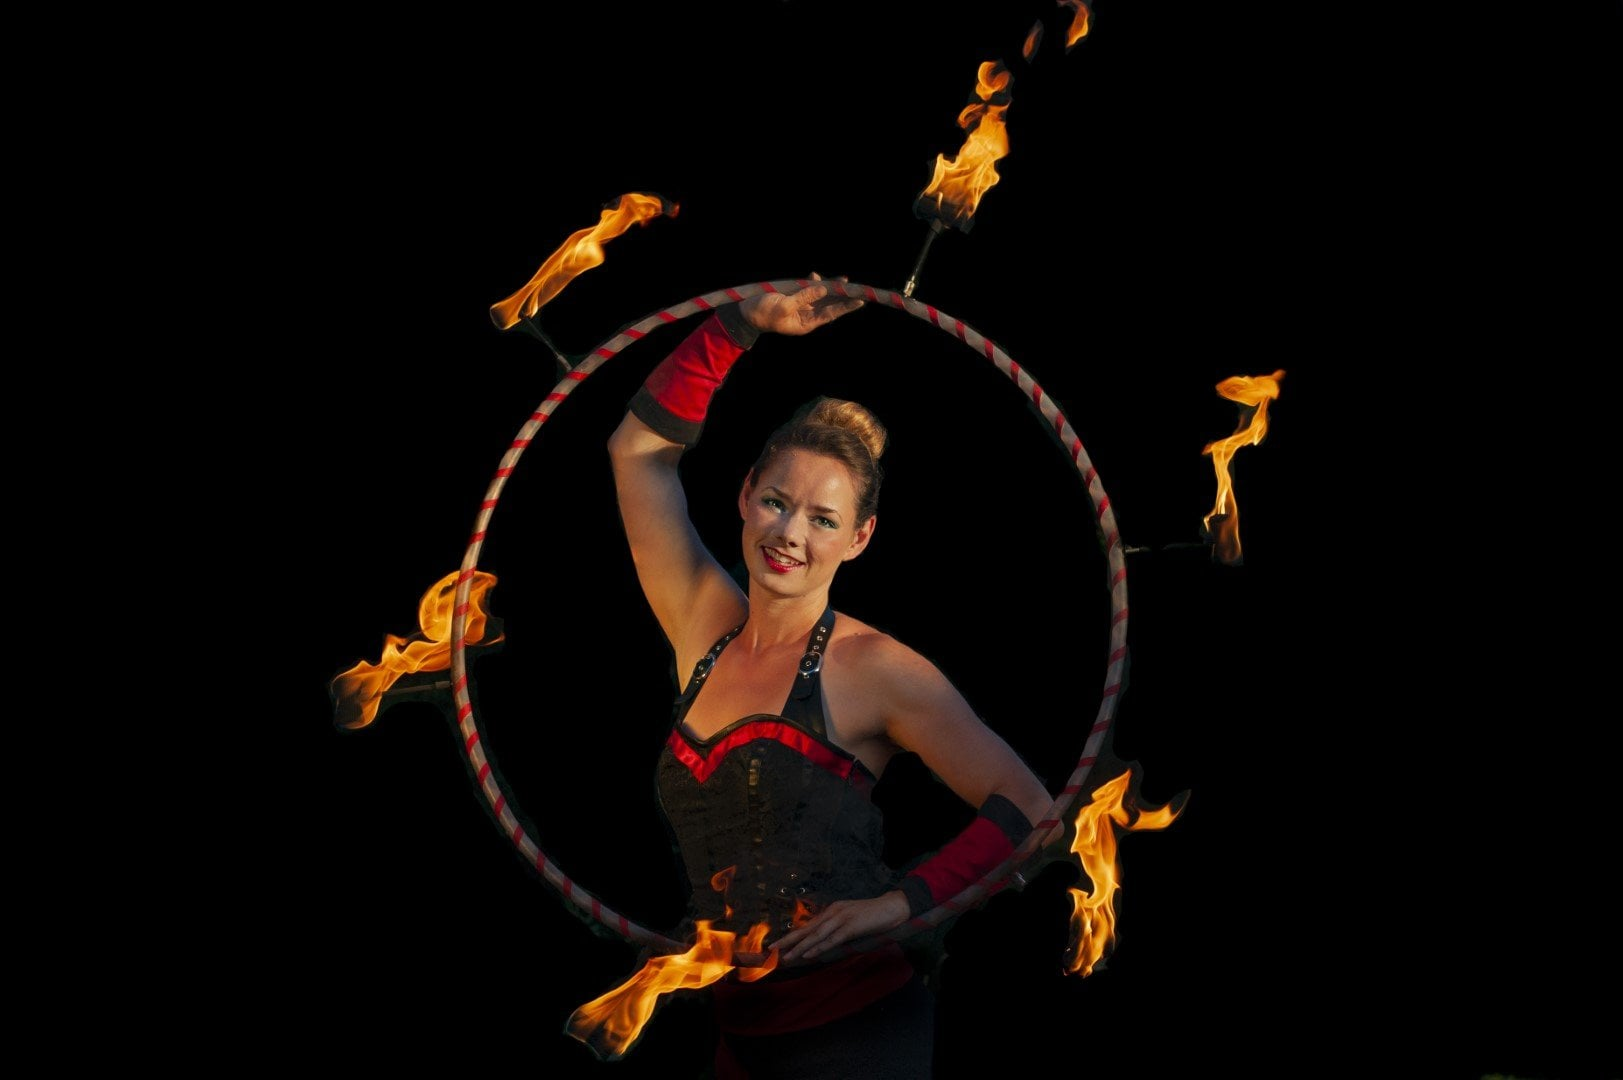 Fire Hula Hoop Performer